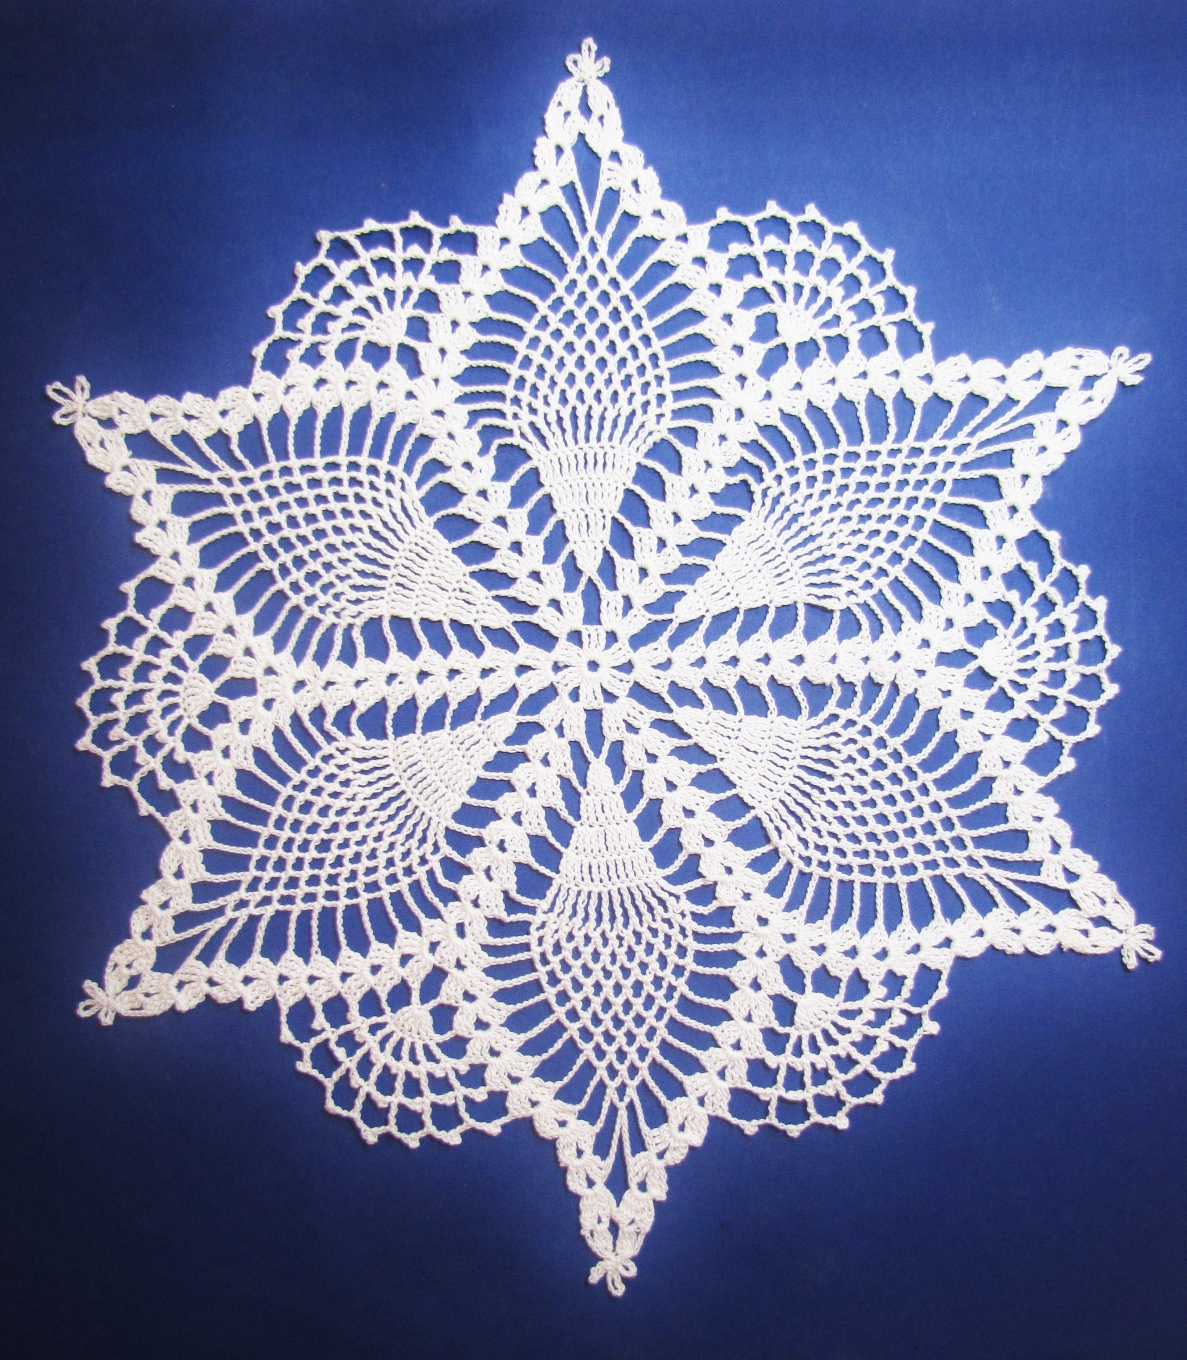 Crochet Doily Patterns Free For Beginners : FREE THREAD CROCHET CHRISTMAS DOILY PATTERNS ? Easy ...